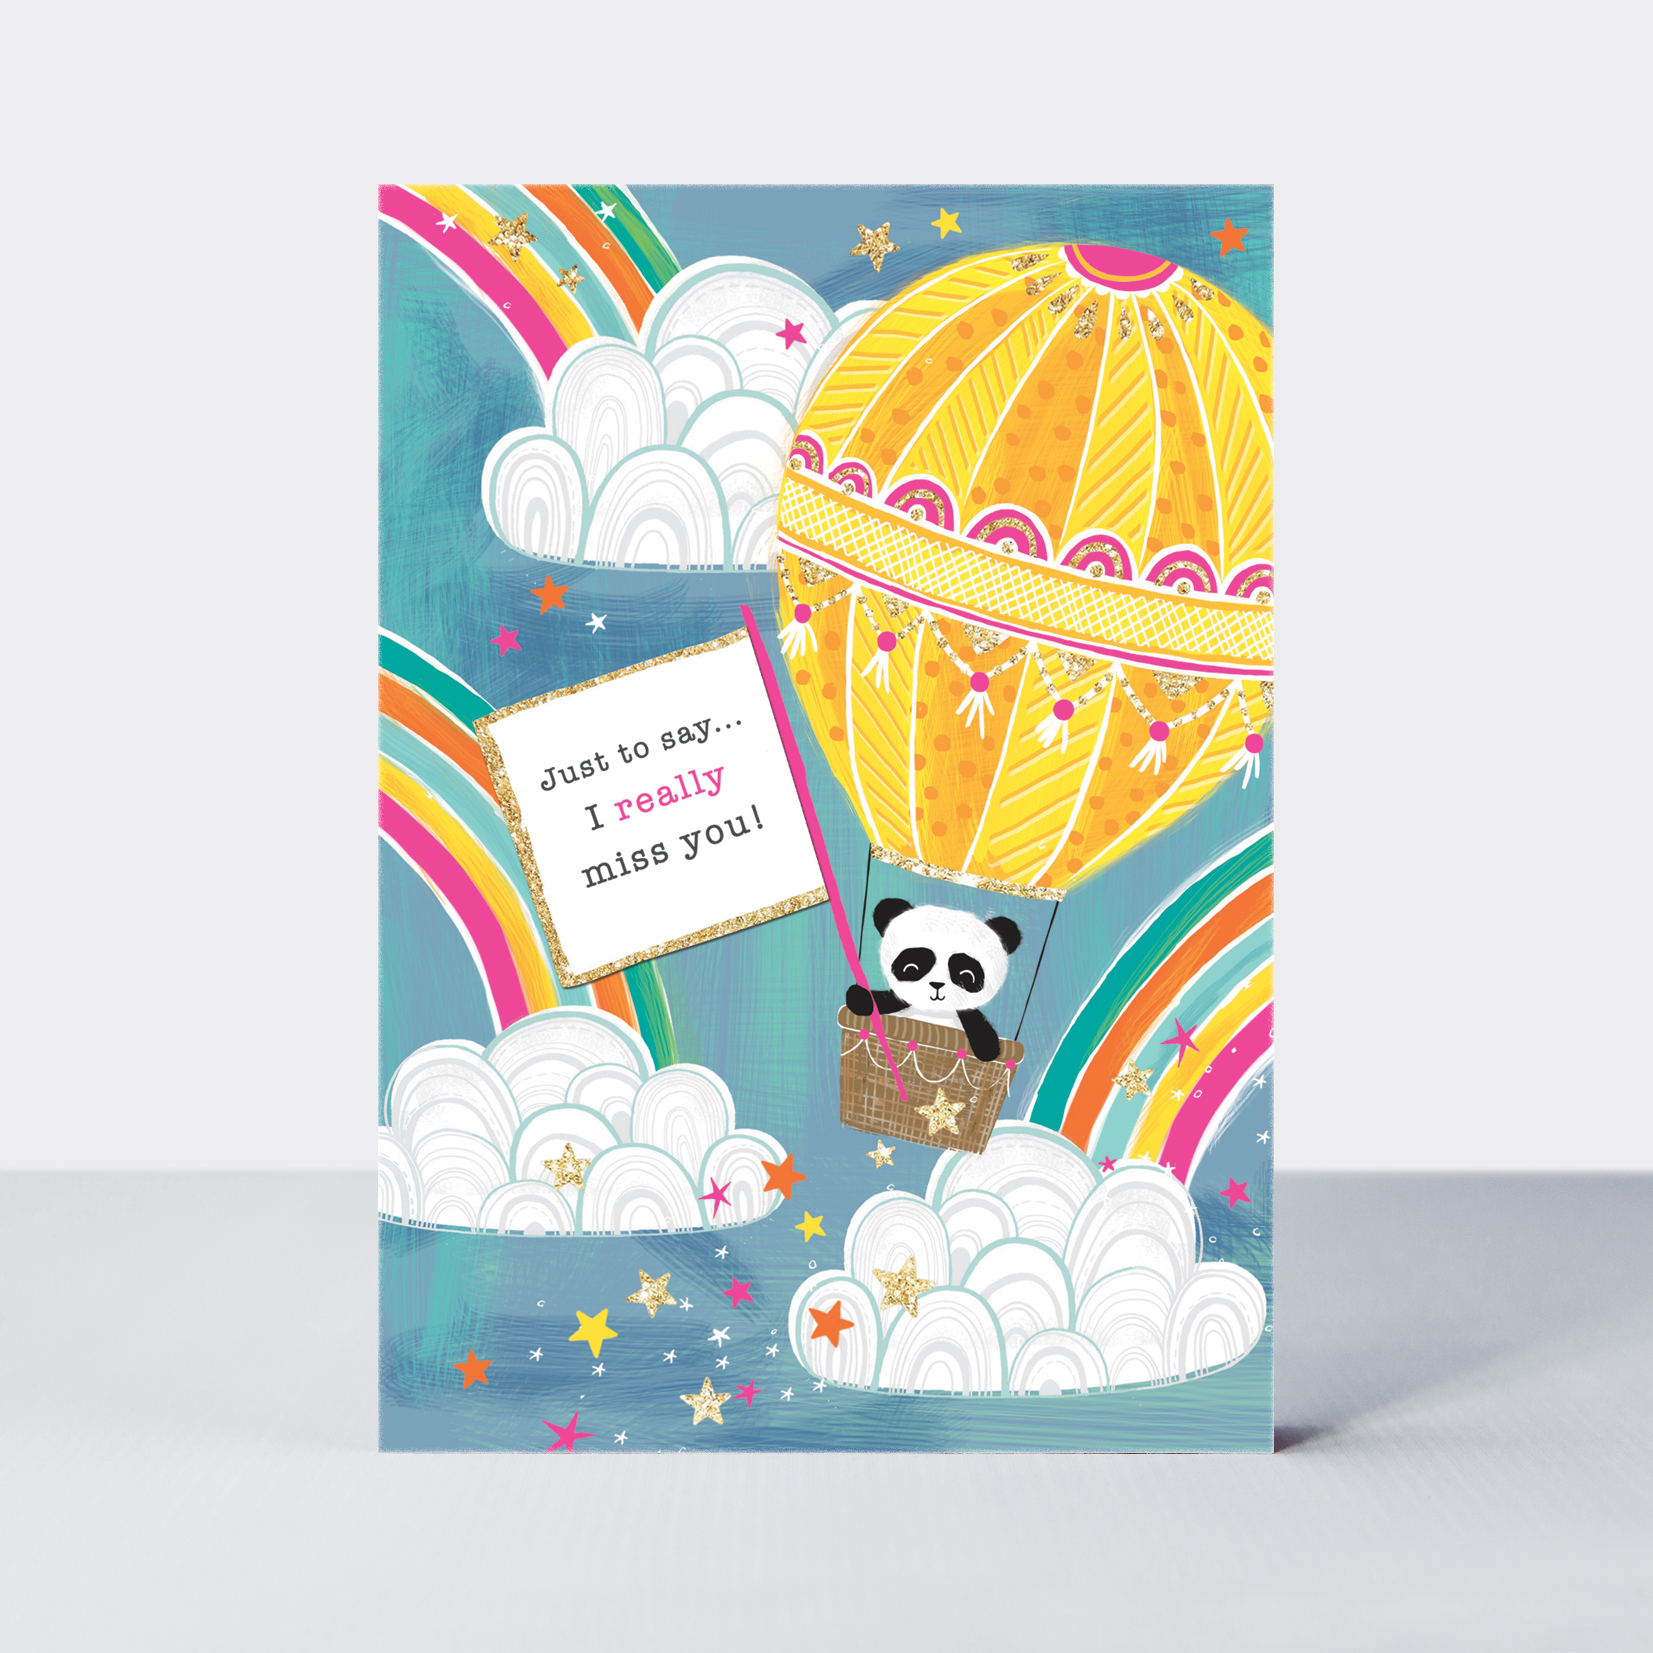 buy beautiful birthday cards for her birthday girl online at karenza paperie